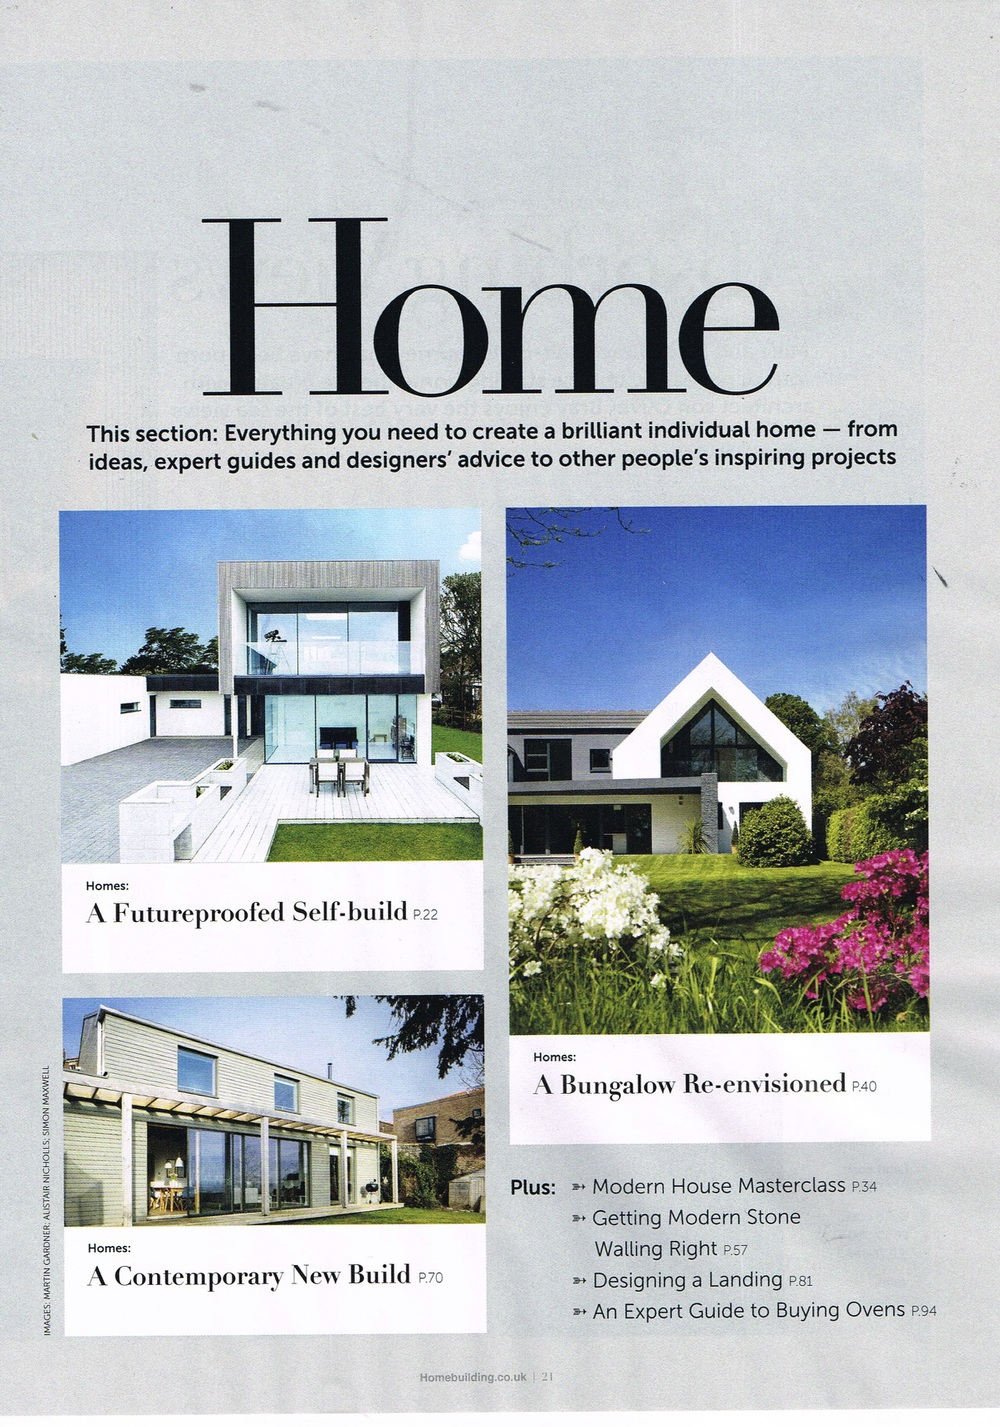 Homebuilding & Renovating_October 2015_Zinc House